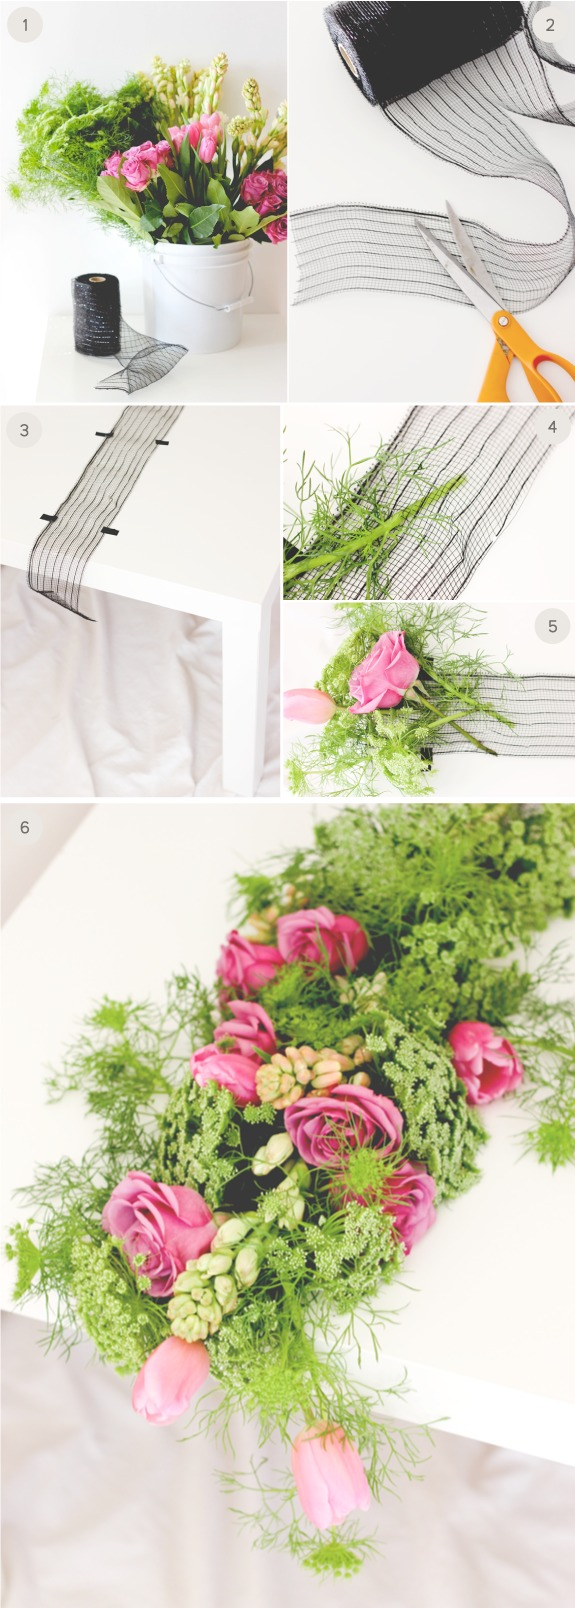 DIY greenery and bright pink bloom wedding table runner (via www.minted.com)